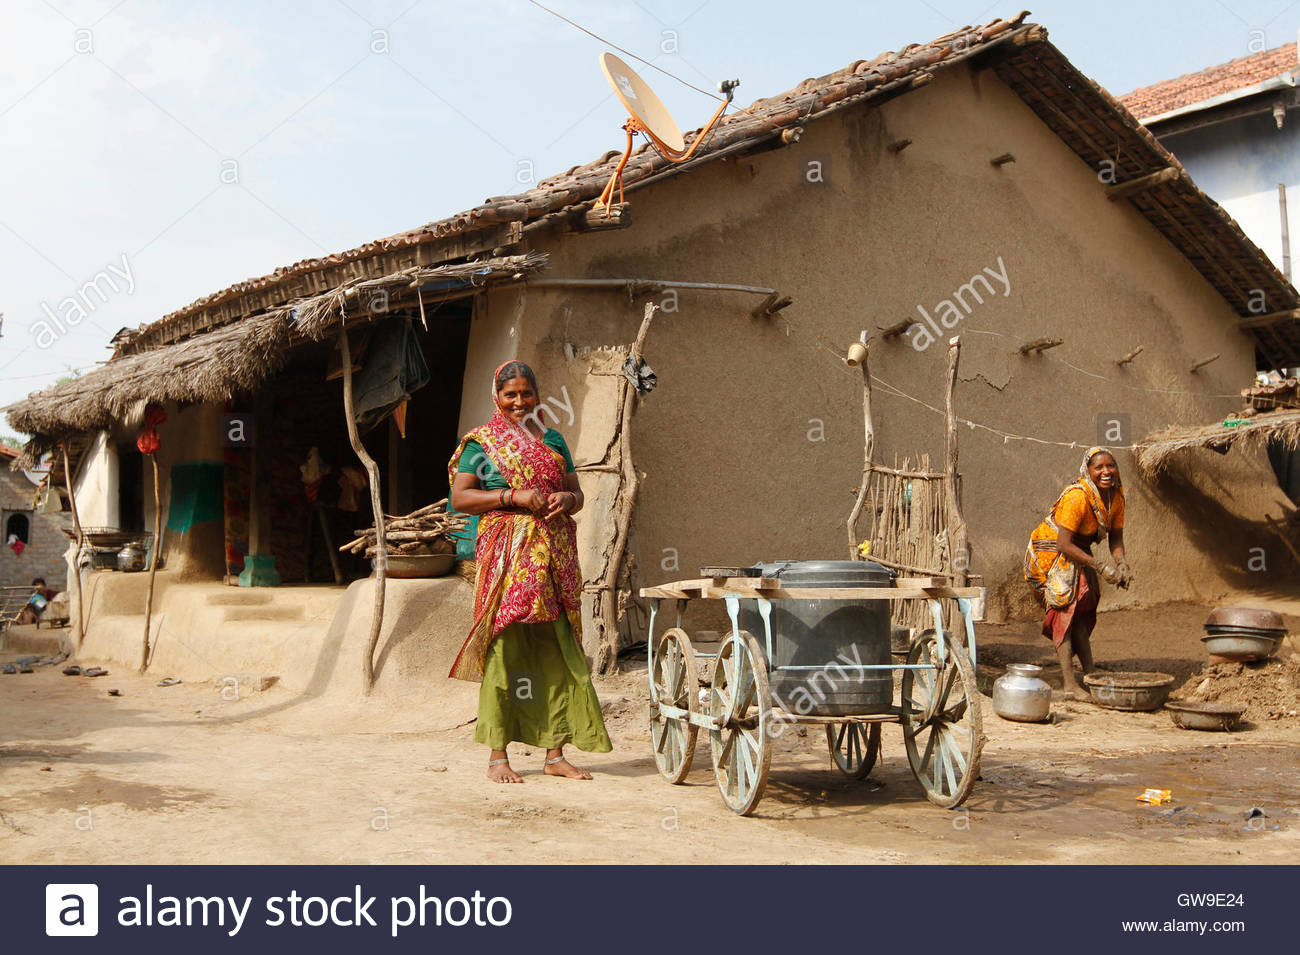 Villagers smile outside their mud house in khun village near dholera town in the western indian